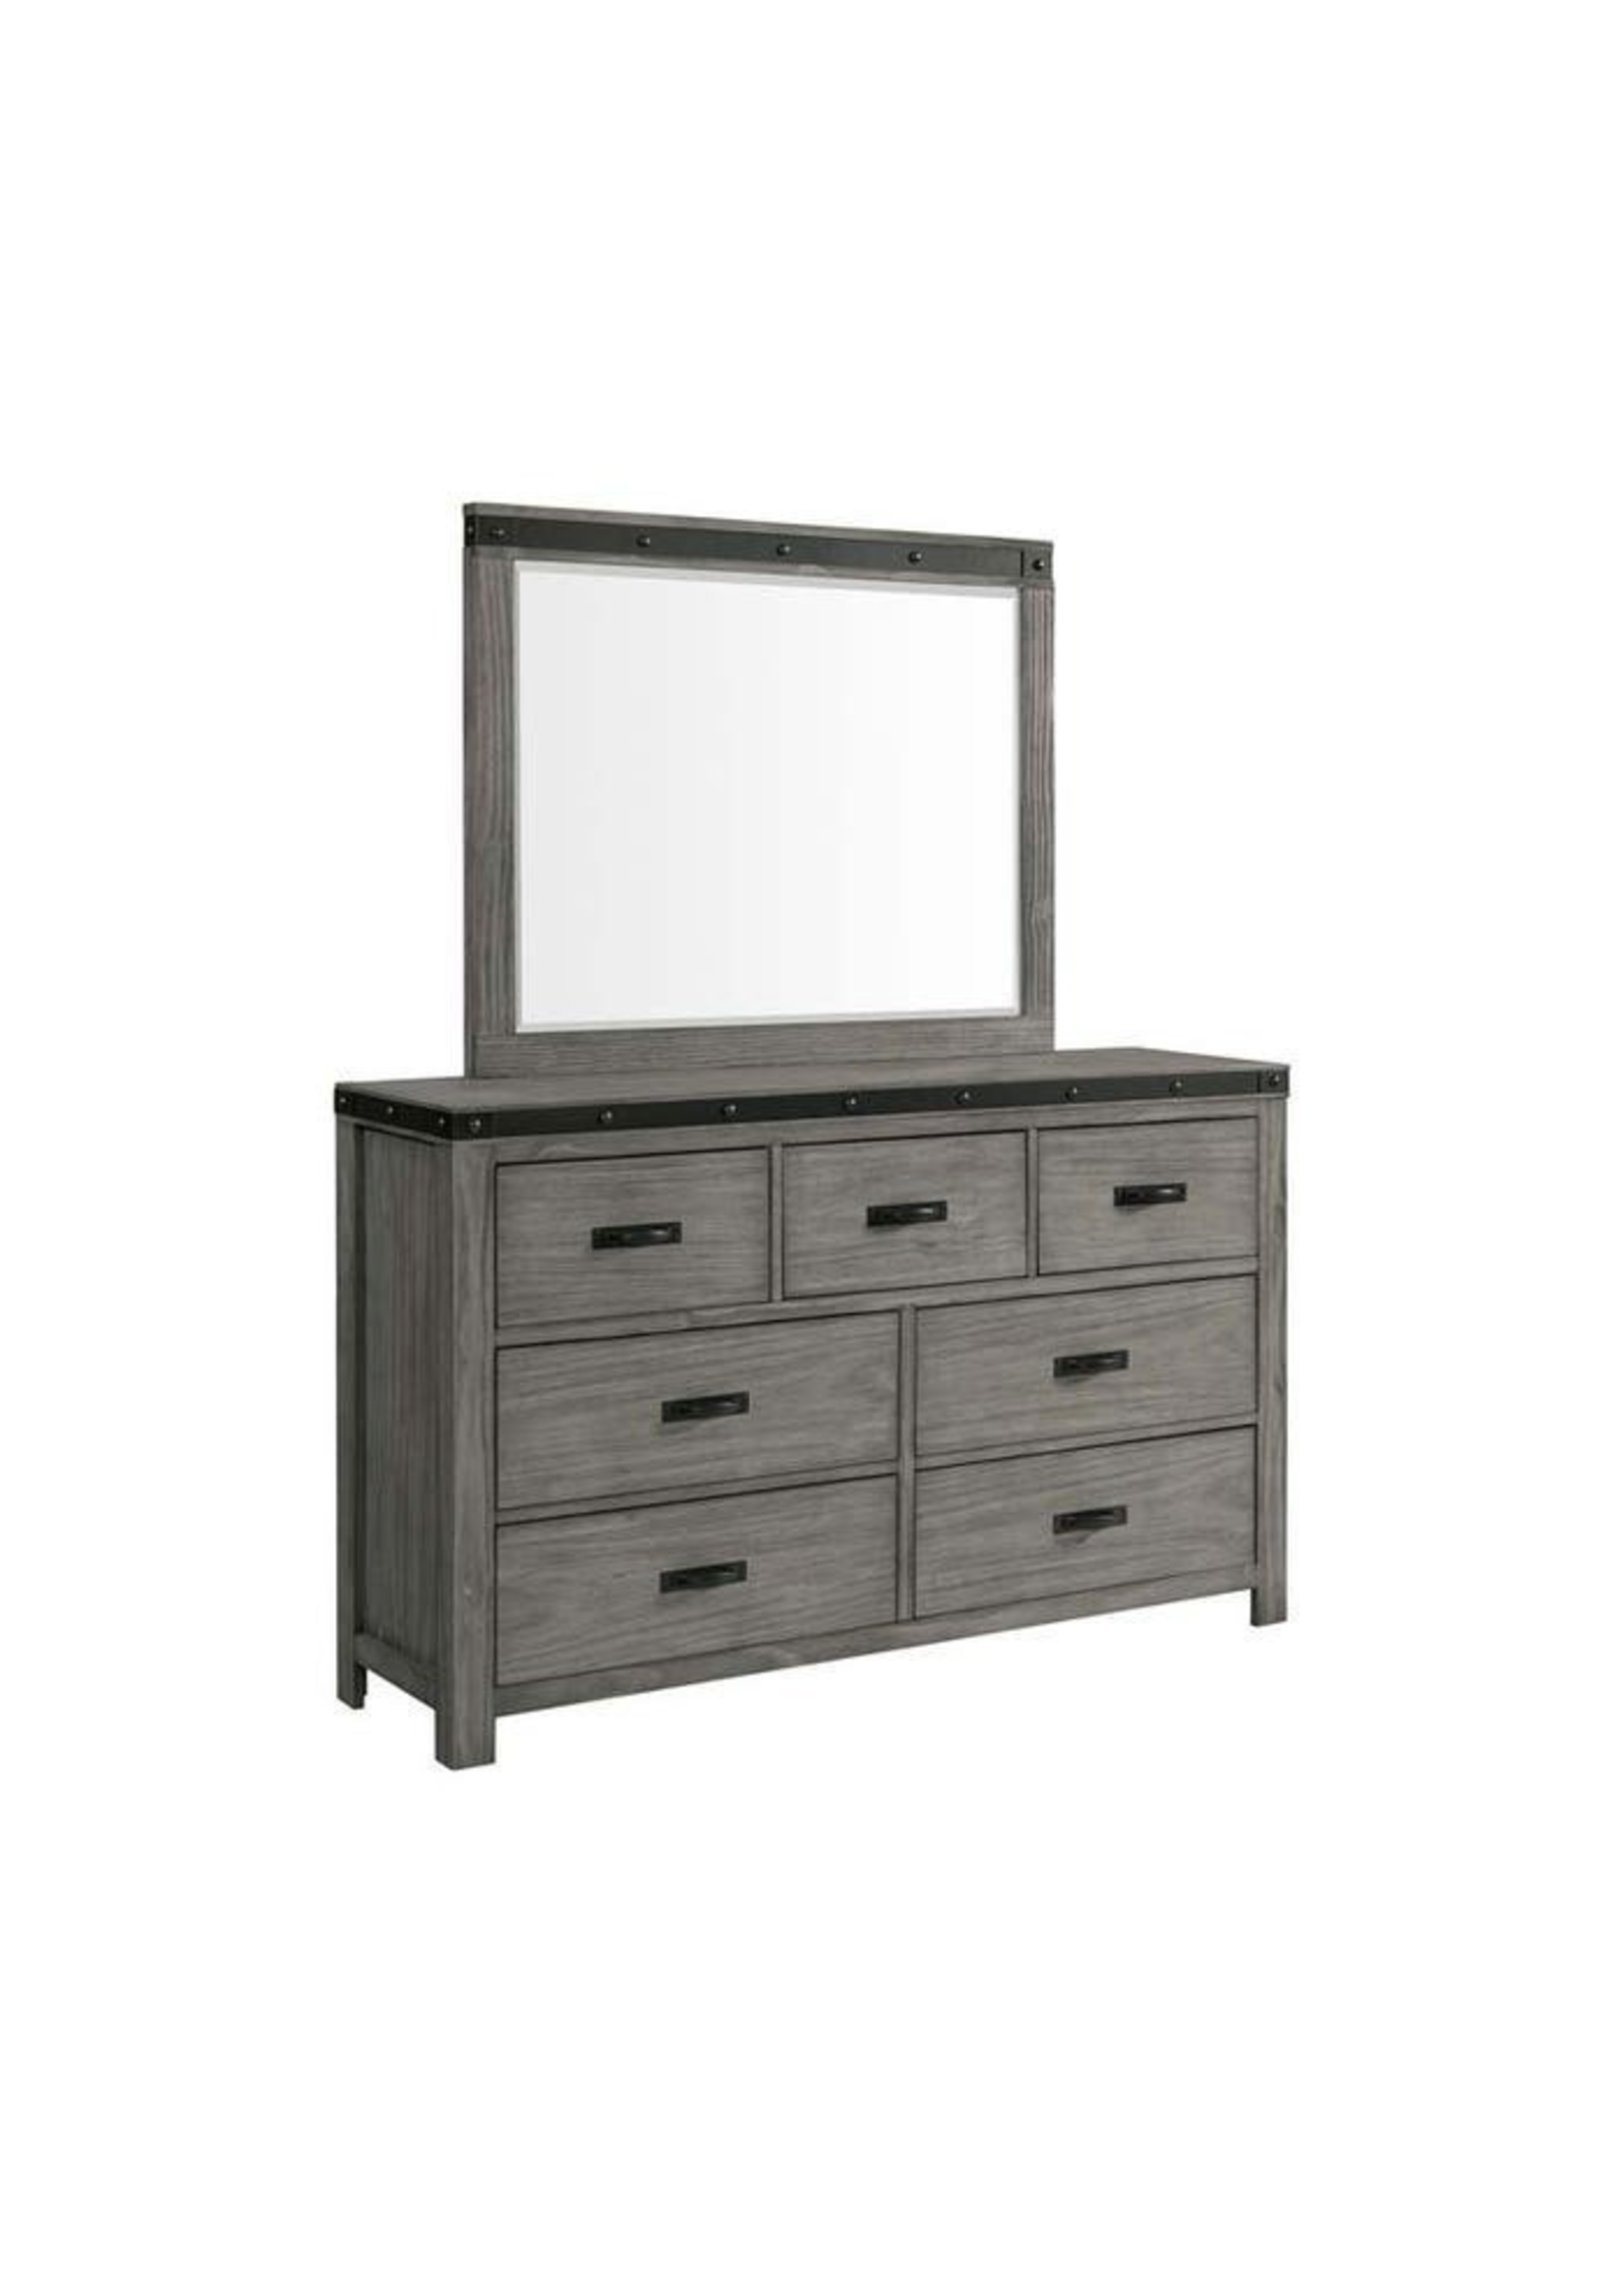 ELEMENTS WADE YOUTH DRESSER IN GREY